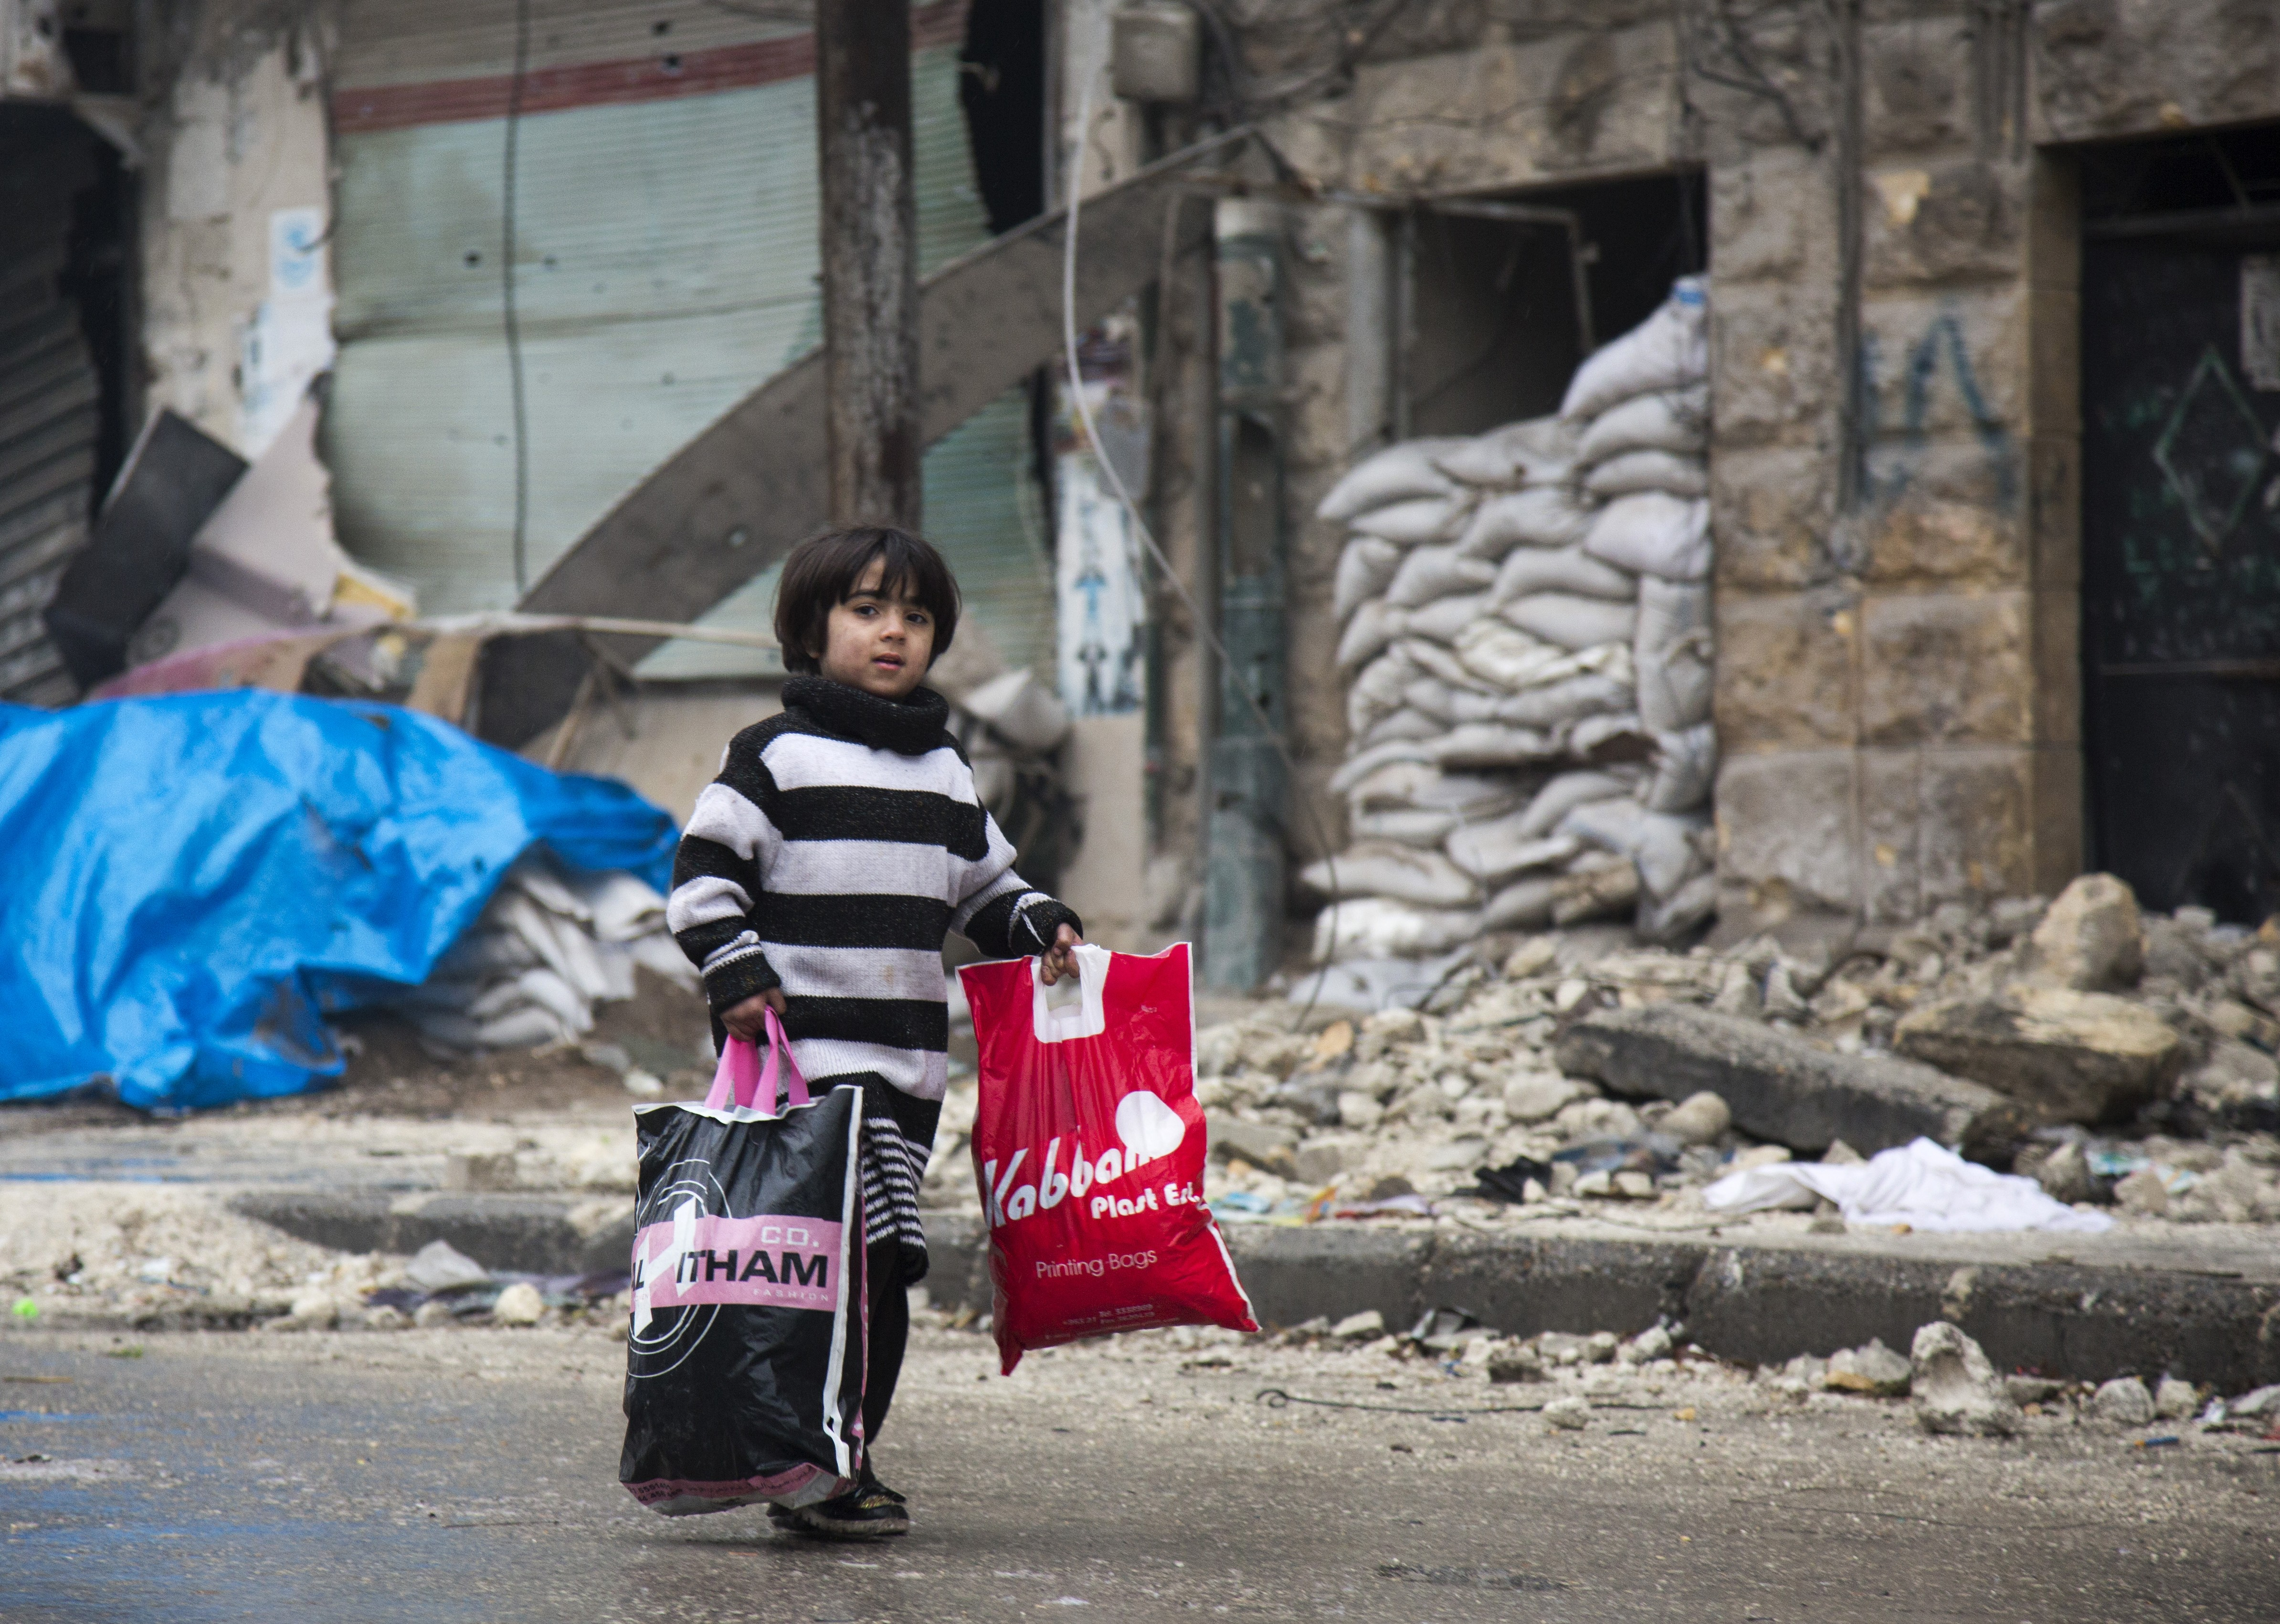 A Syrian boy is seen among other civilains leaving a rebel-held area of Aleppo towards the government-held side on December 13, 2016. Image credit: AFP